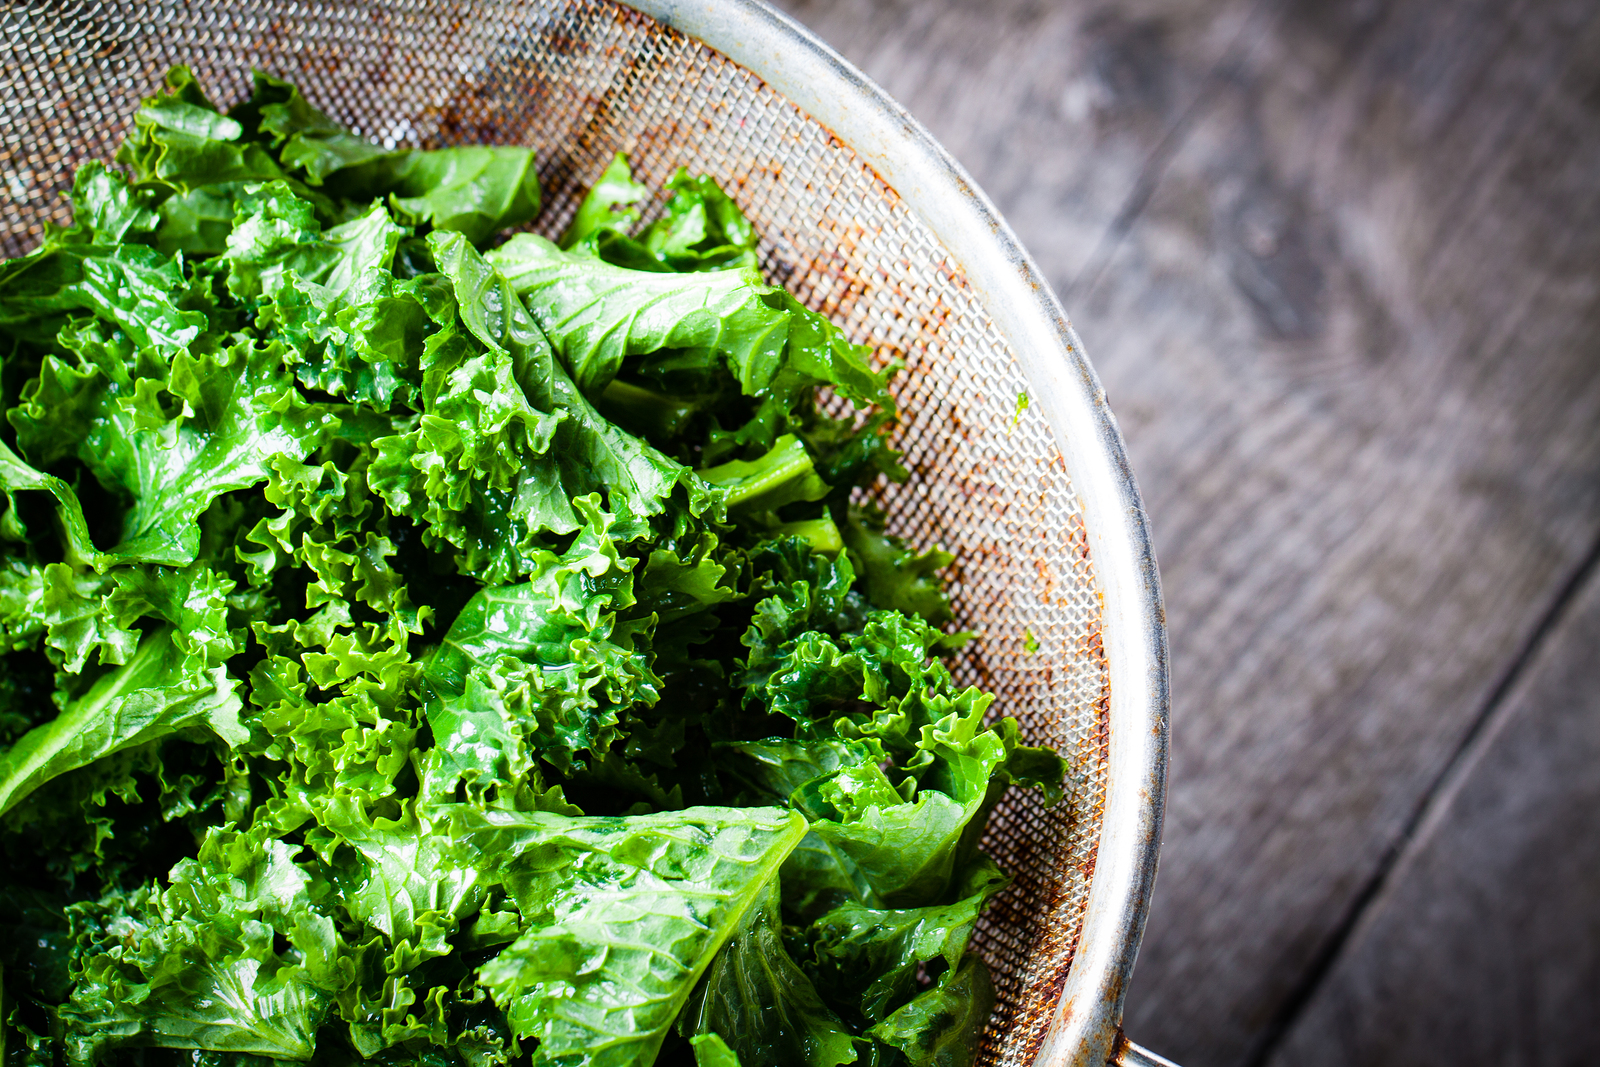 Does Anybody Actually Eat Kale?